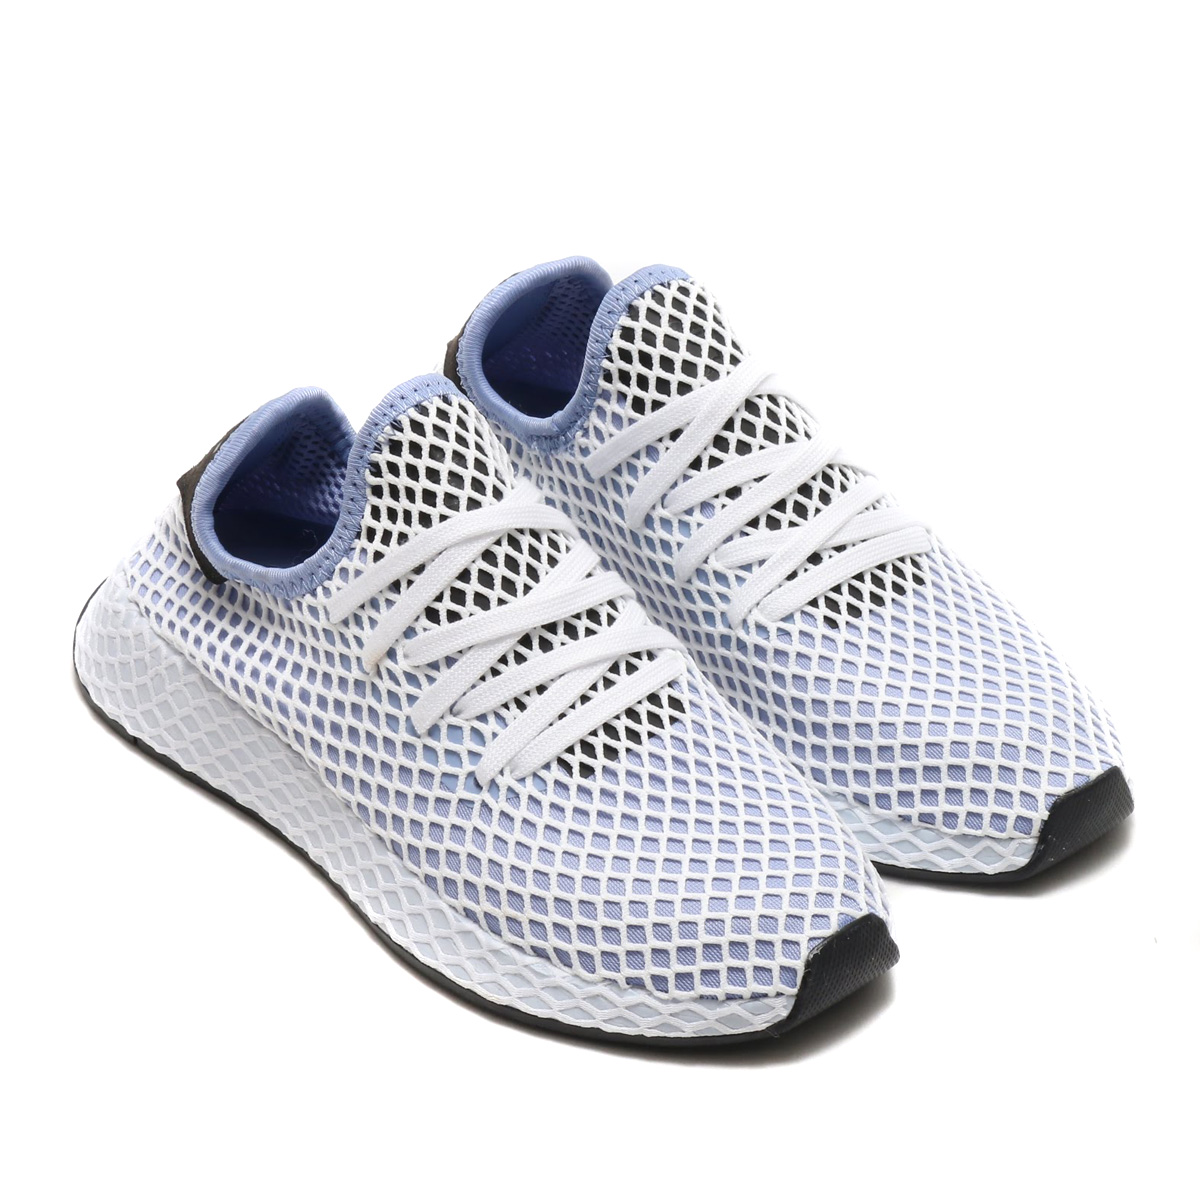 premium selection 6c601 4425a adidas Originals DEERUPT RUNNER W (アディダスオリジナルスディーラプトランナー W) (chalk blue  S18  chalk blue S18  core black) 18SS-I